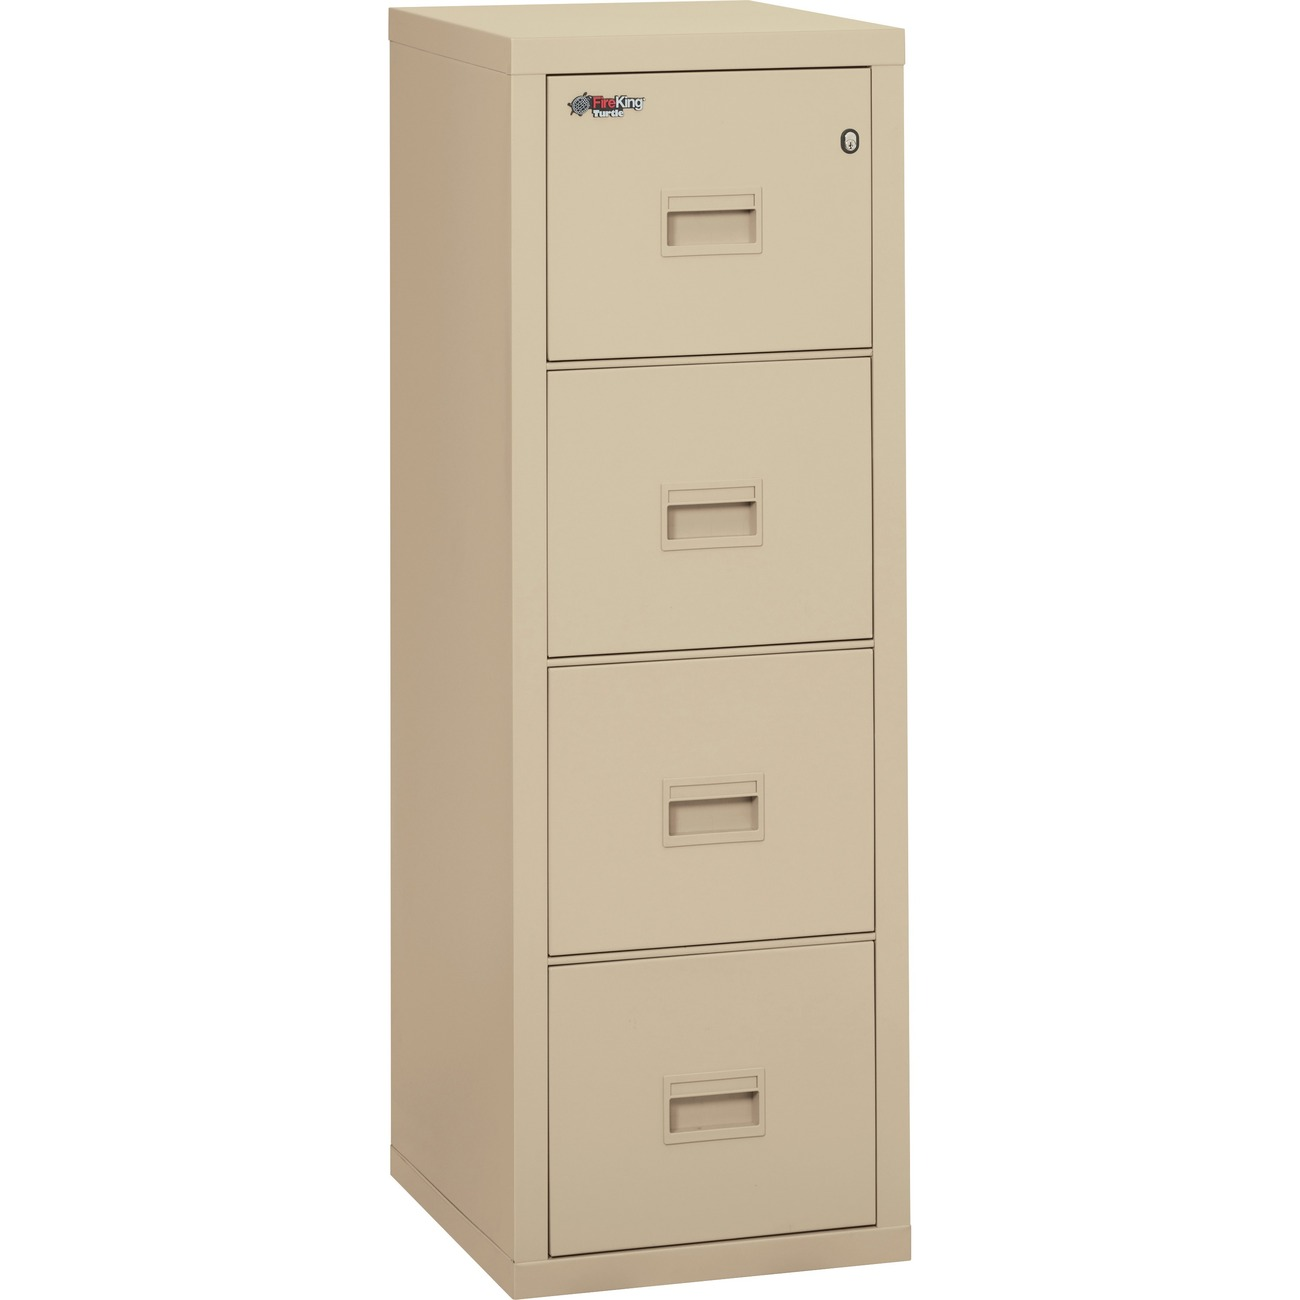 Fireking Insulated Turtle File Cabinet 17 7 X 22 1 52 8 4 Drawer S For Letter Legal Fire Resistant Parchment Powder Coated Steel